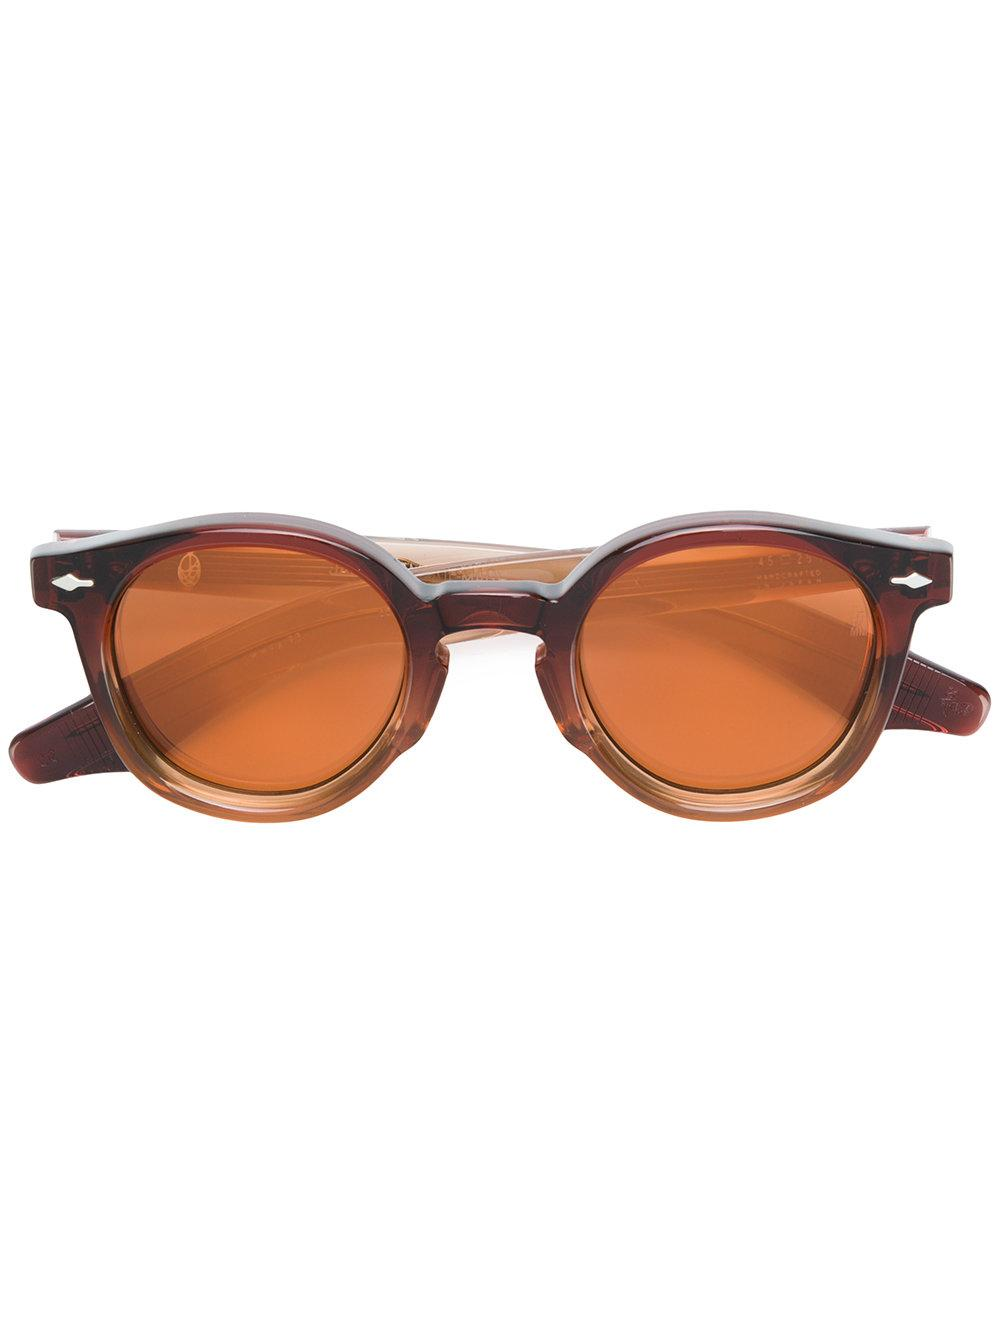 Jacques Marie Mage Felix Round Frame Sunglasses In Brown